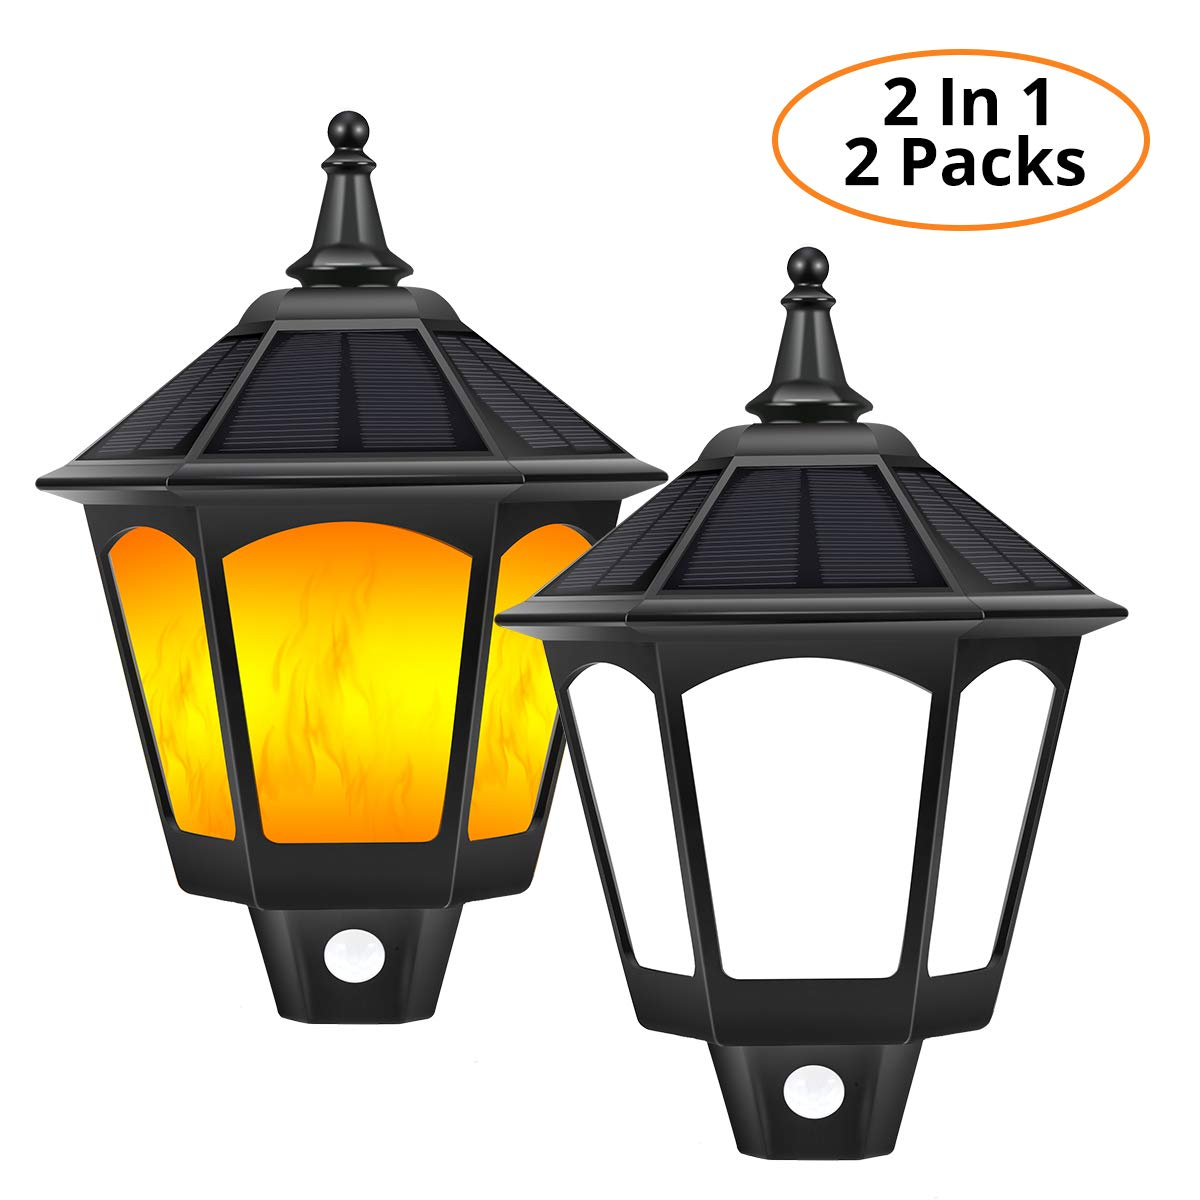 Solar Wall Lights Outdoor, B-right 2 in 1 Motion Sensor Wall Lights 6000k White Light + Dusk to Dawn Auto On/Off Warm Flickering Flames Lights for Garden Yard Pathway Front Door Patio Porch 2 Packs [Energy Class A+++] BD003J12CT-BK*2